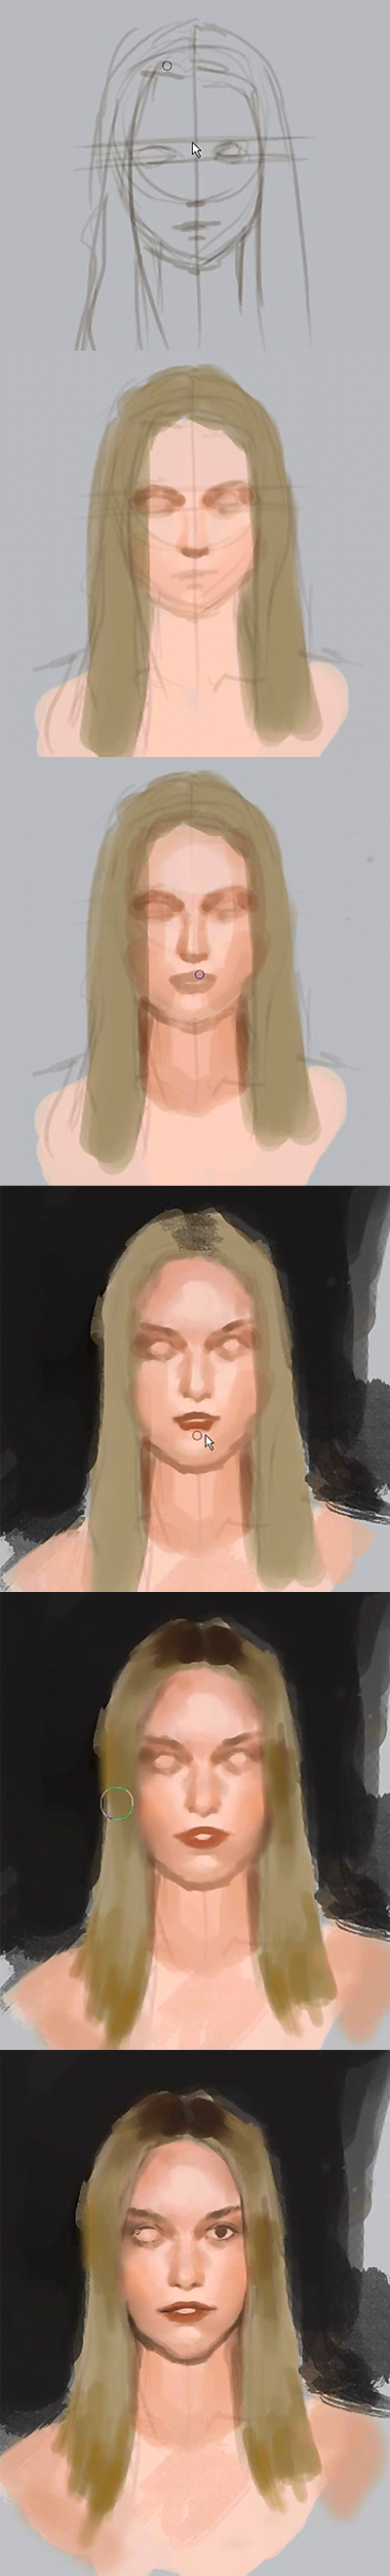 painting woman portrait step by step Painting portrait of a woman